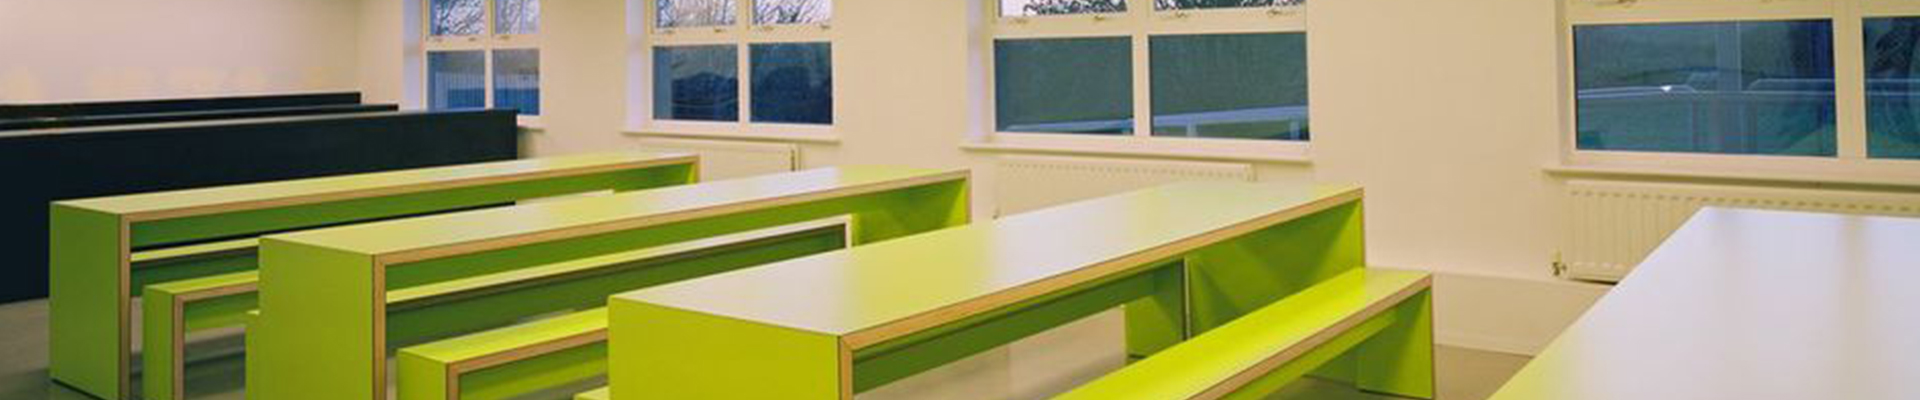 Refurbishment Of Foreign Language School Eltham London